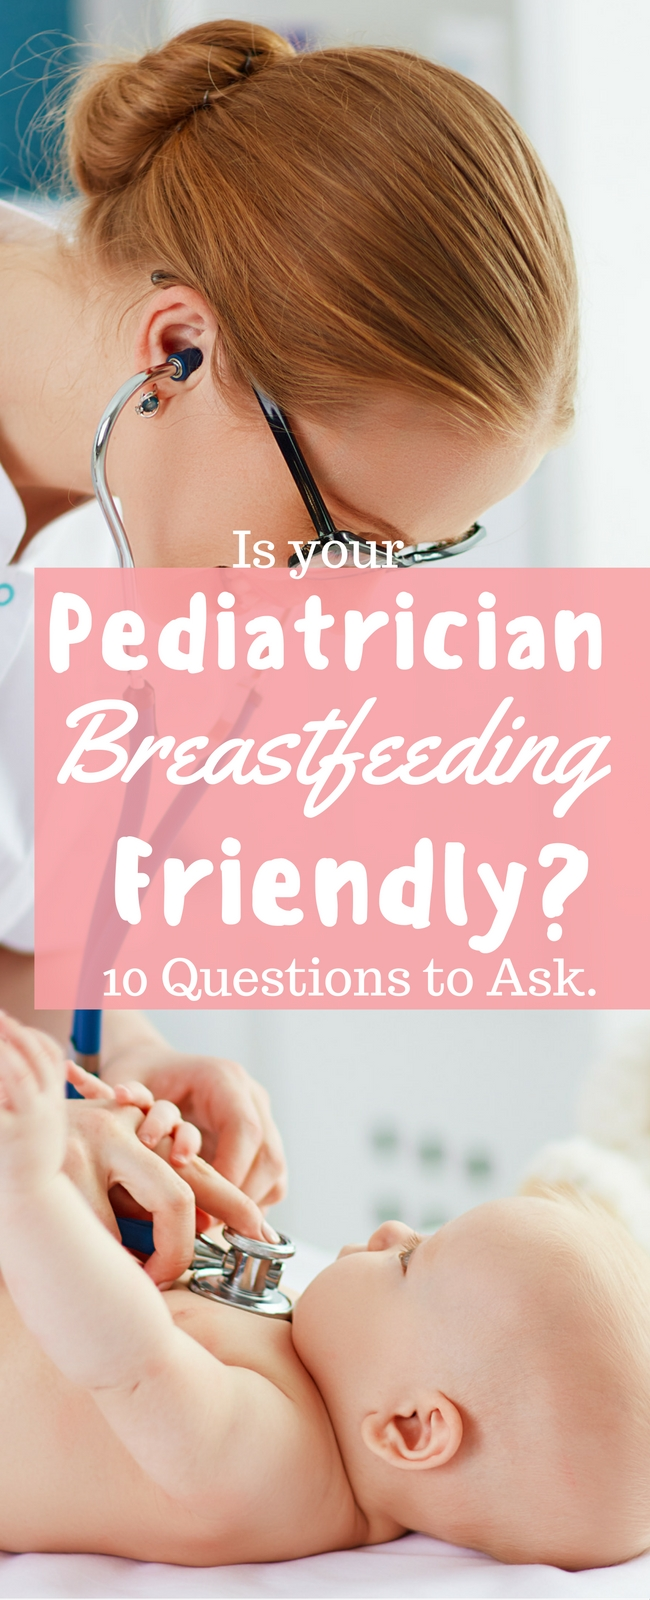 Is your pediatrician breastfeeding friendly? Here are 13 questions to ask. via @clarkscondensed